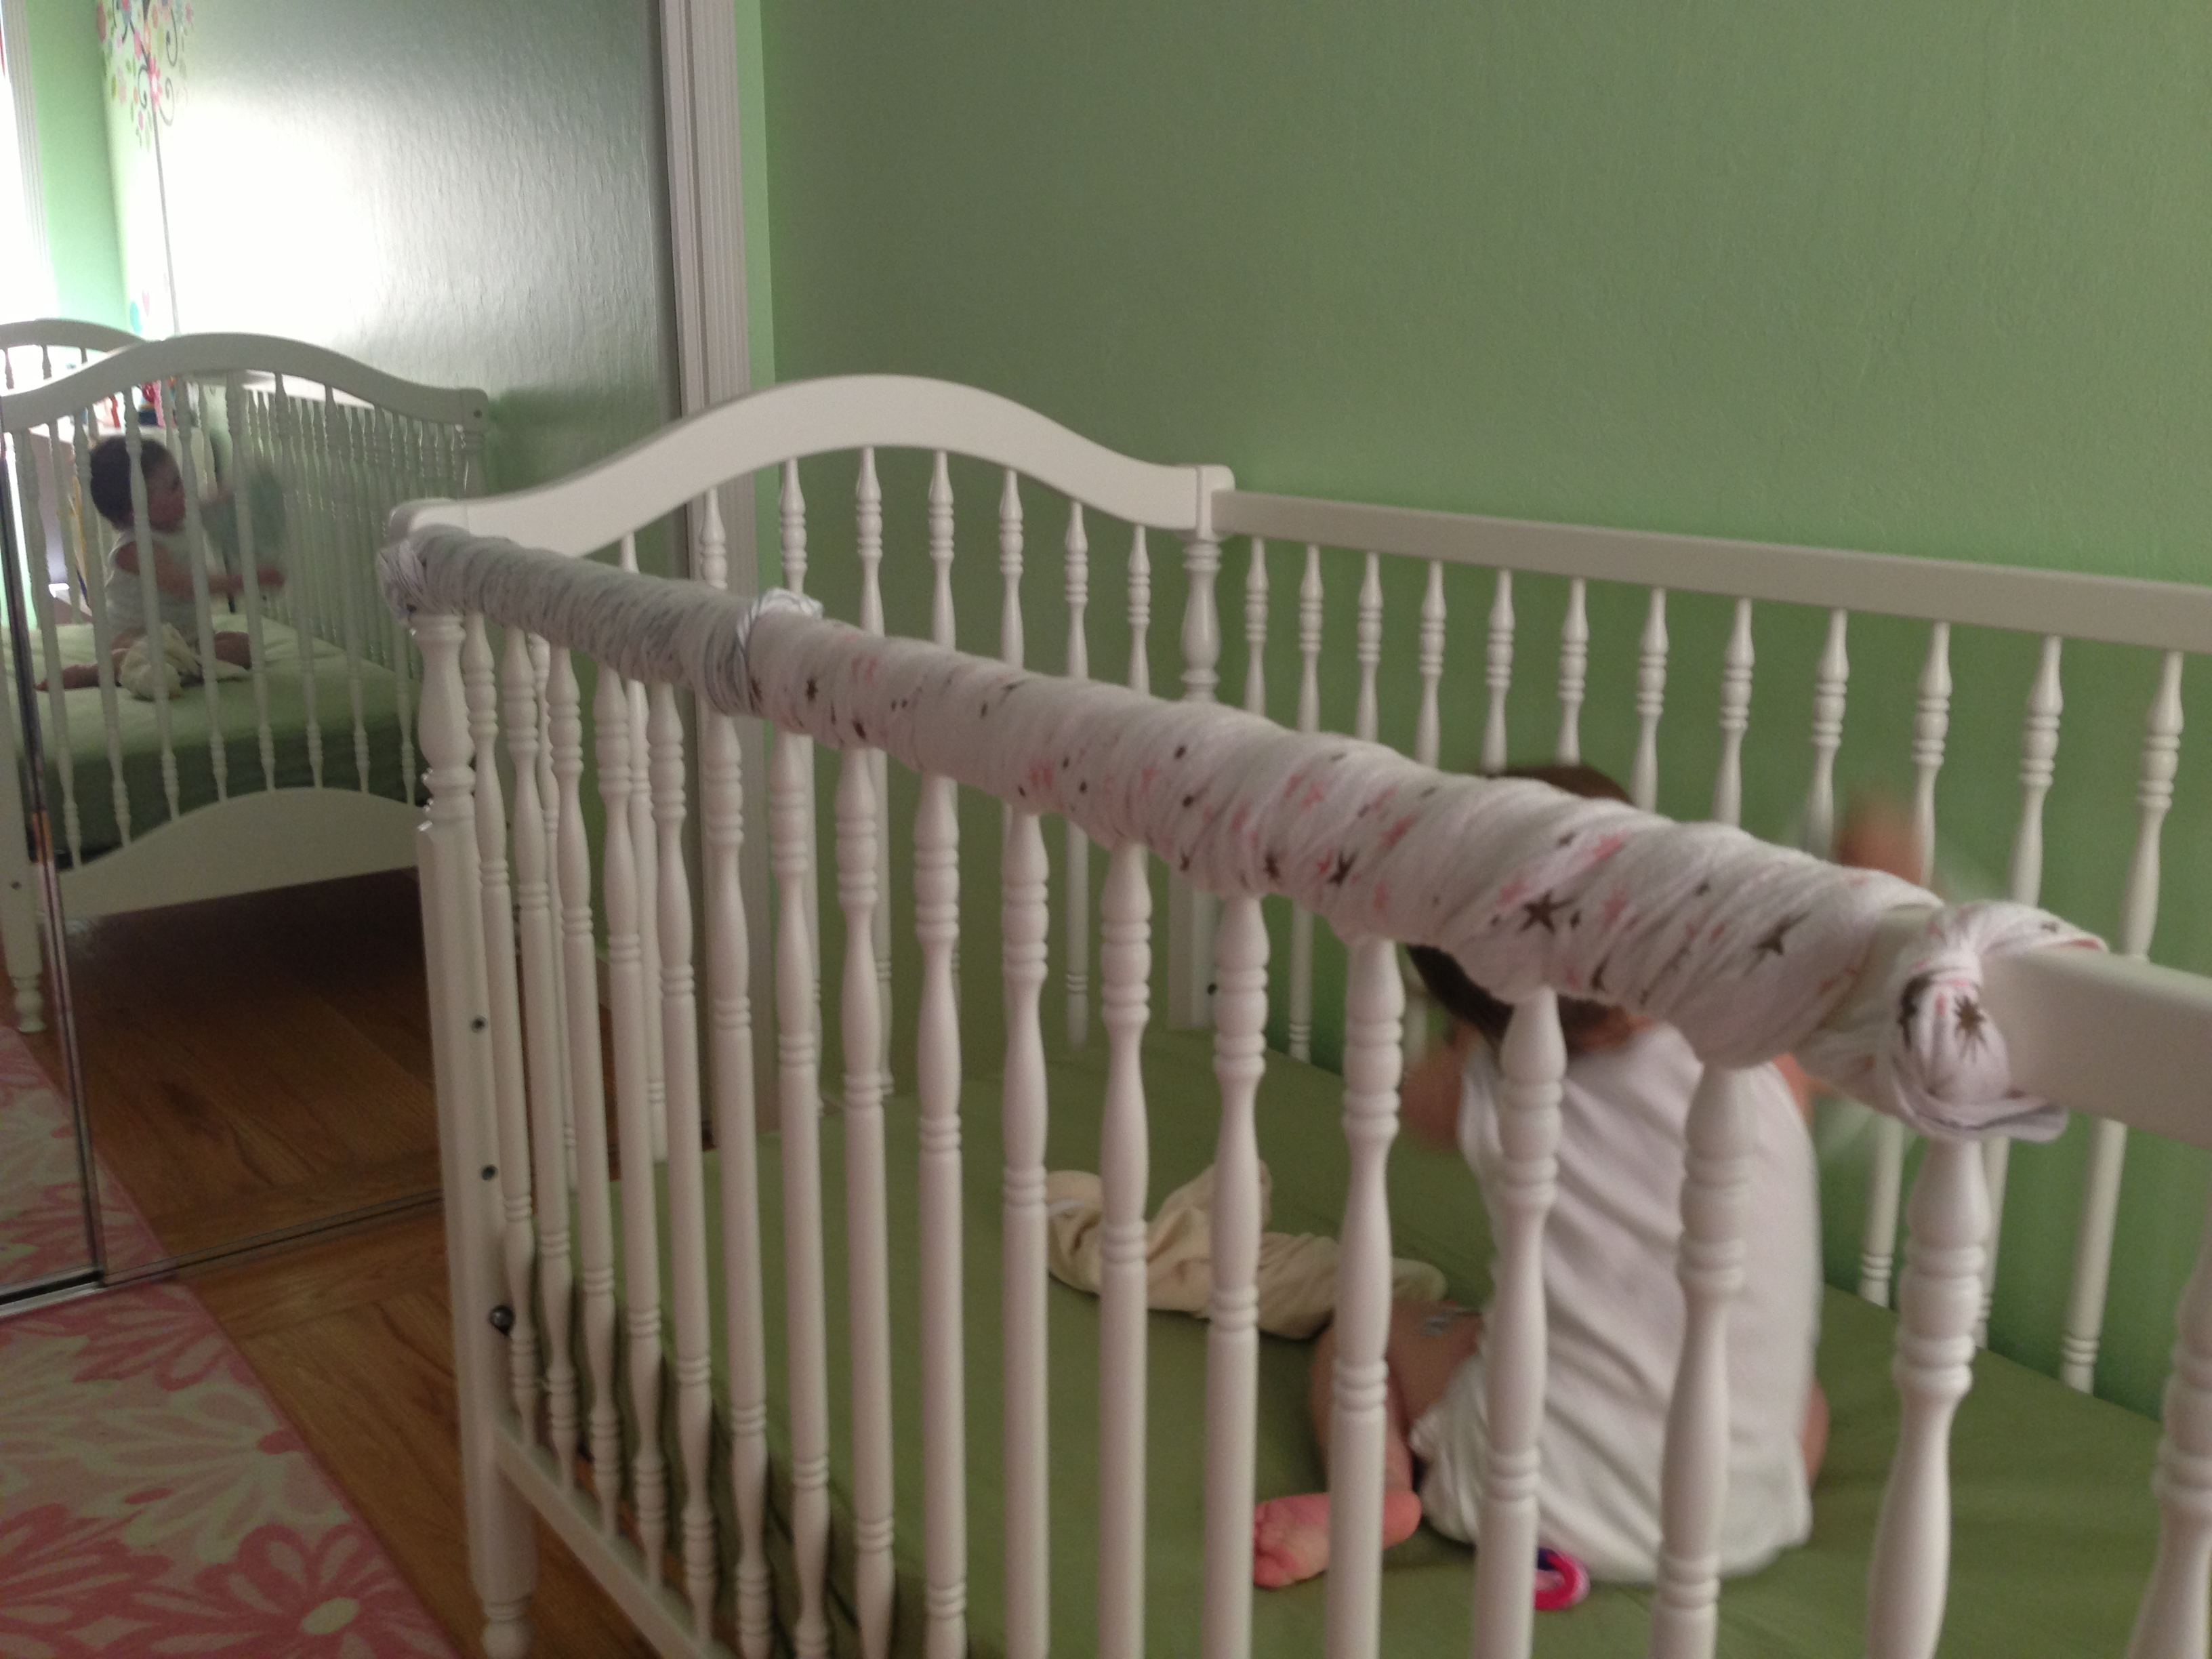 Today S Hint How To Cheaply Save Cribs From Little Teeth